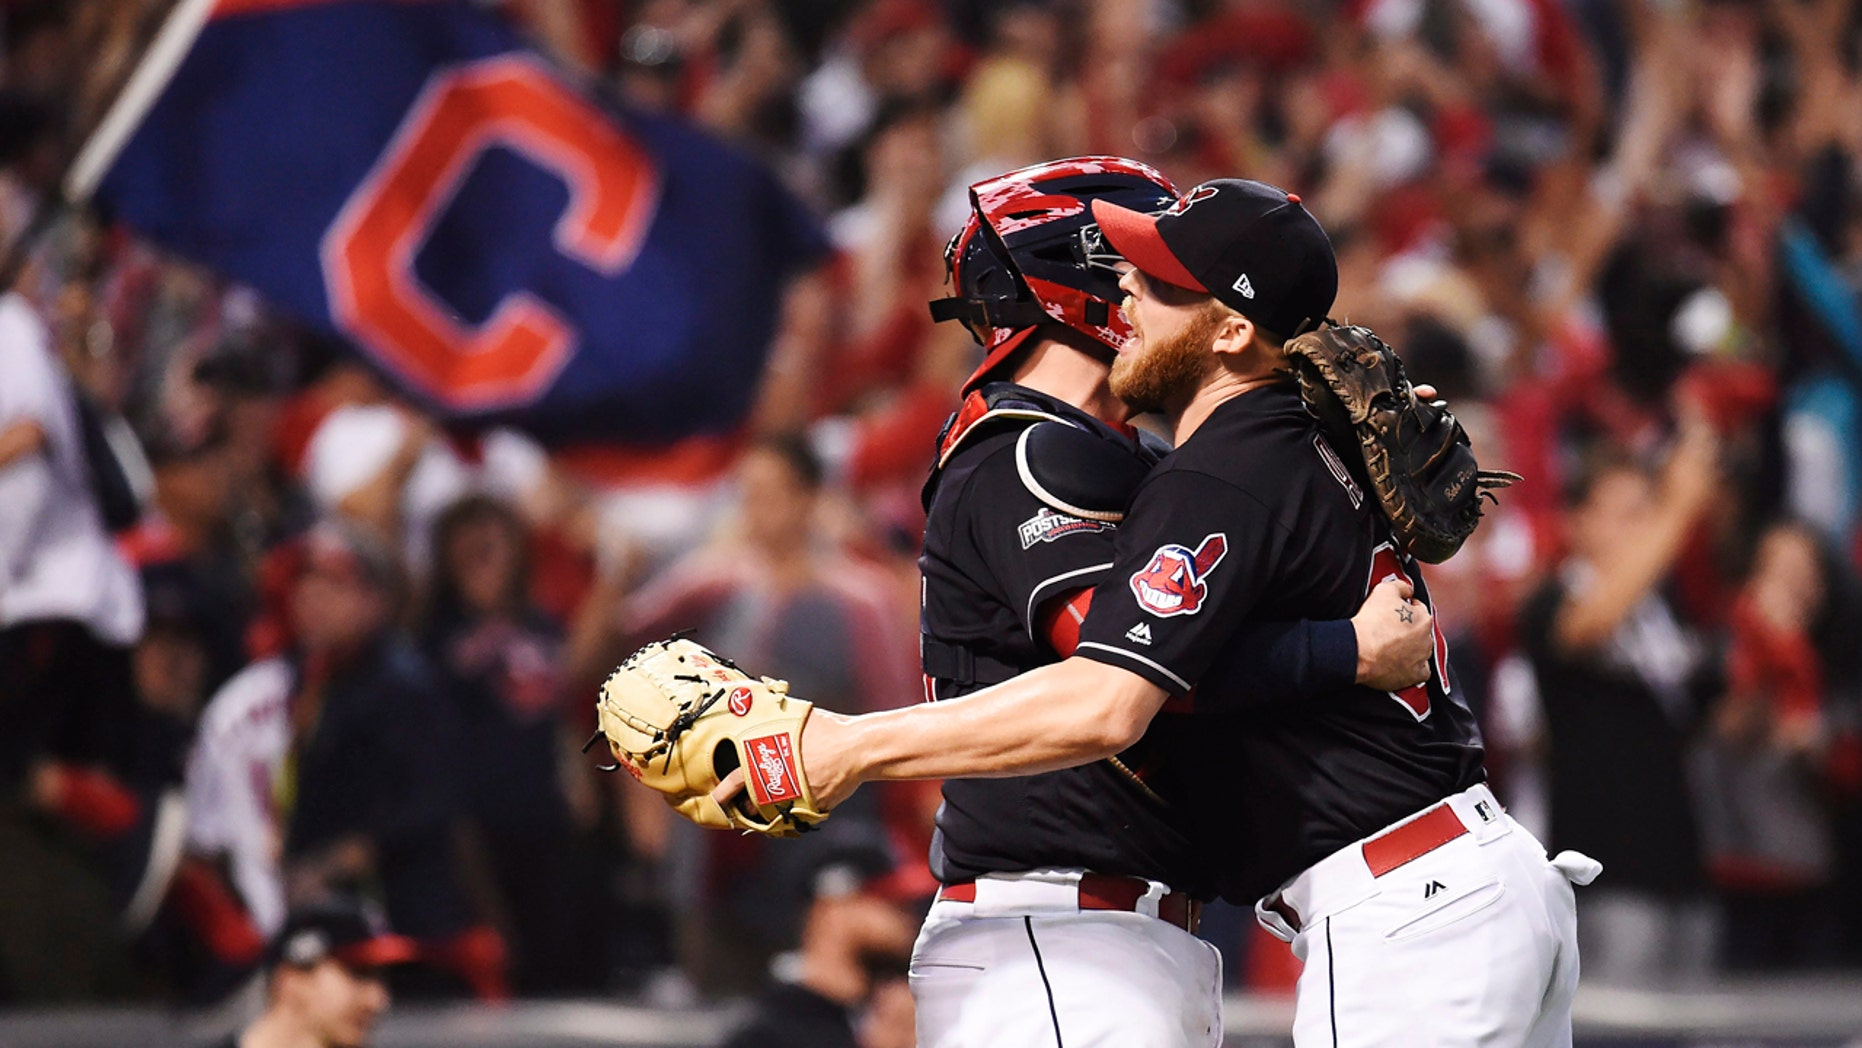 Oct. 15, 2016: Cleveland Indians relief pitcher Cody Allen, right, and catcher Roberto Perez celebrate their 2-1 win against the Toronto Blue Jays in Game 2 of baseball's American League Championship Series in Cleveland.